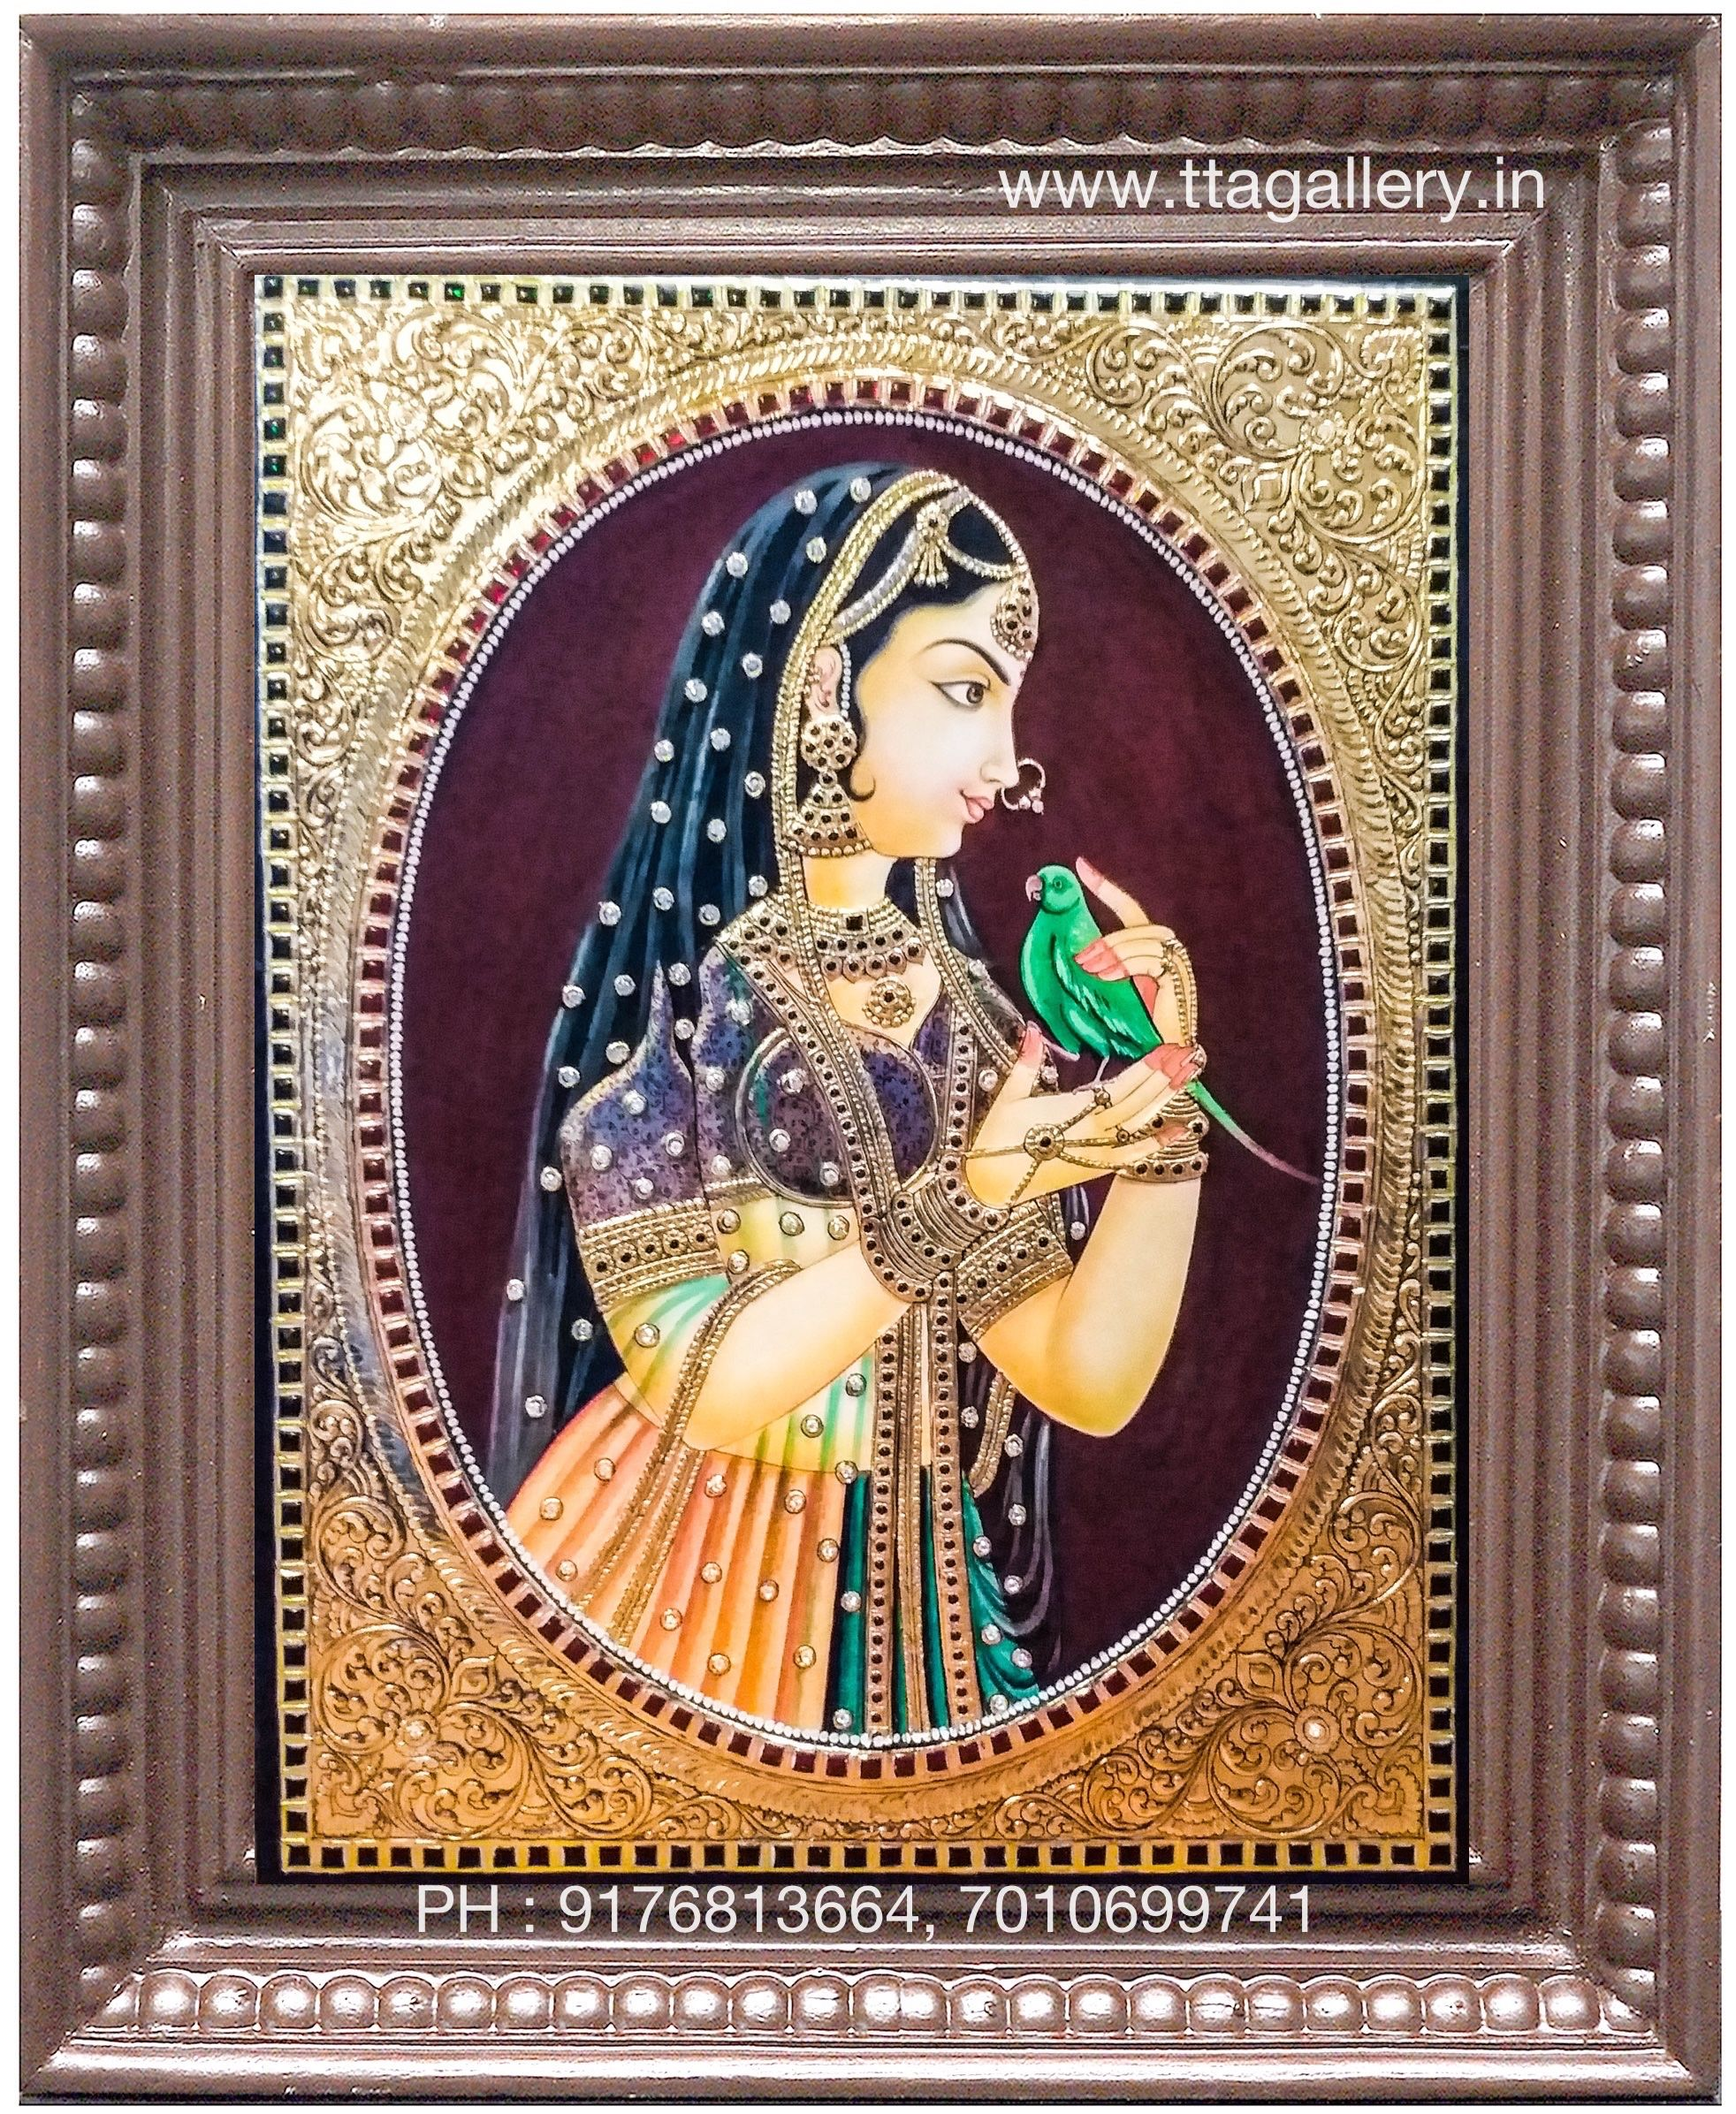 Accent Wall Meaning In Tamil: Pin By Tamil Tanjore Art Gallery On TAMIL TANJORE ART